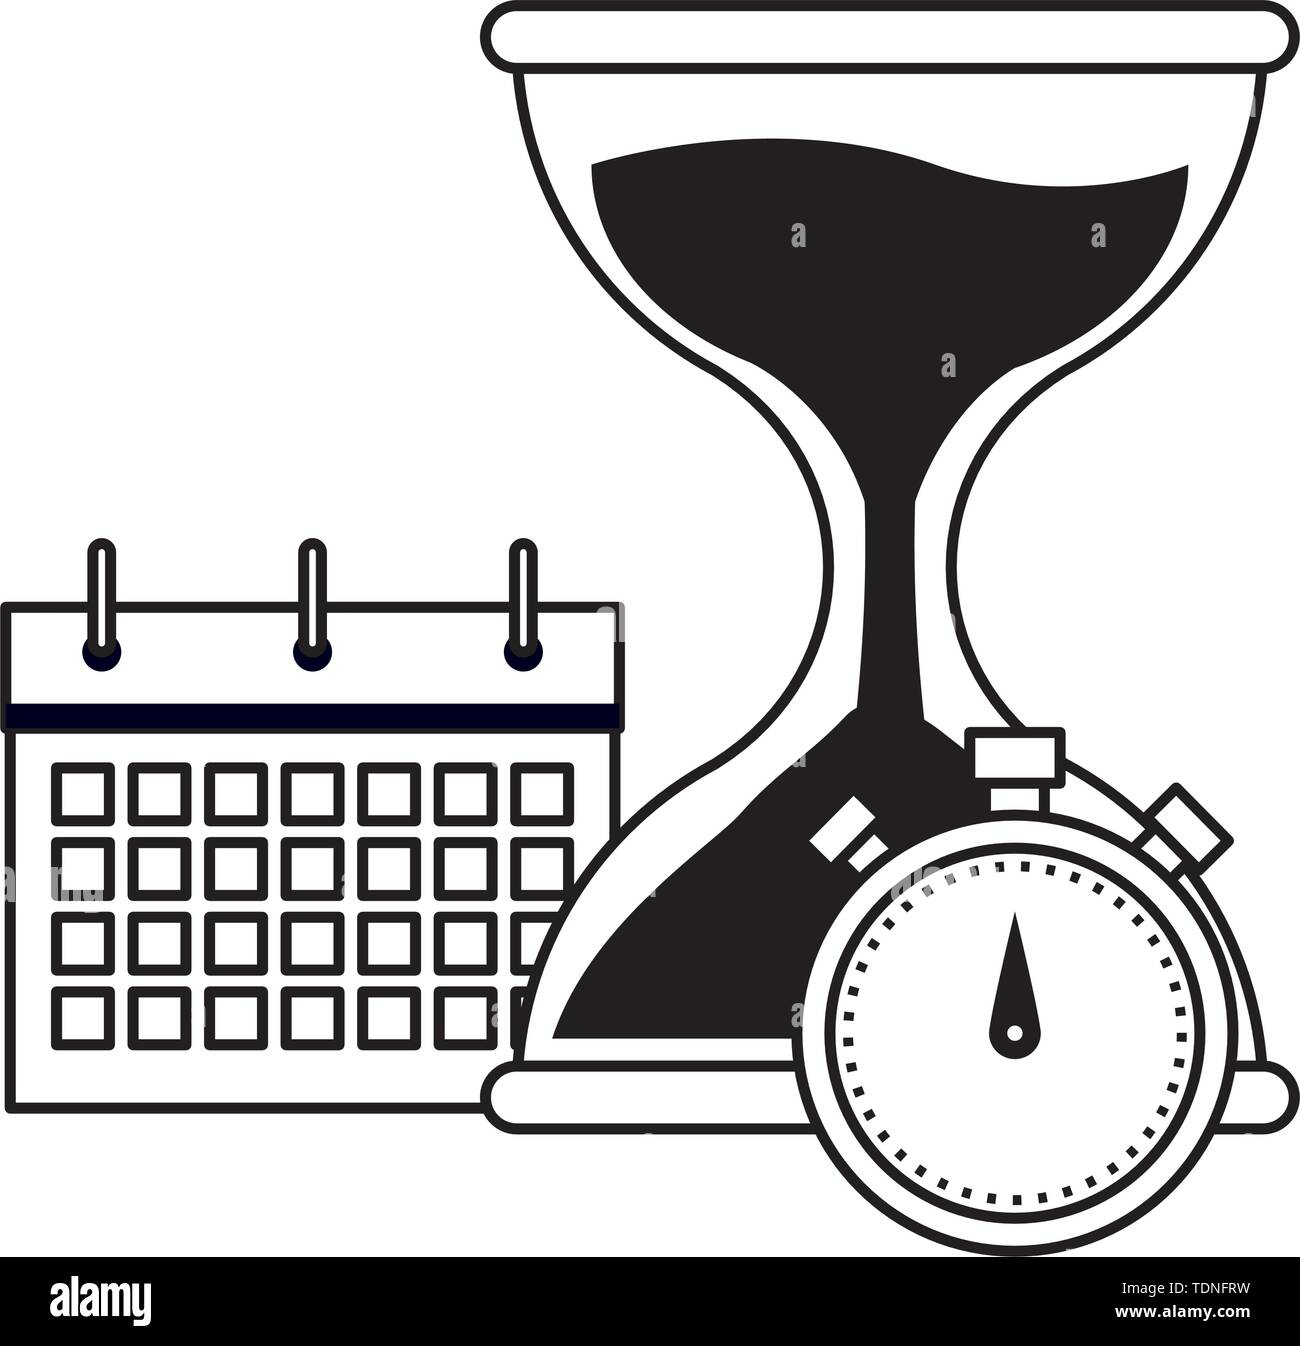 hourglass sand timer with chronometer and calendar icon cartoon in black and white vector illustration graphic design - Stock Image